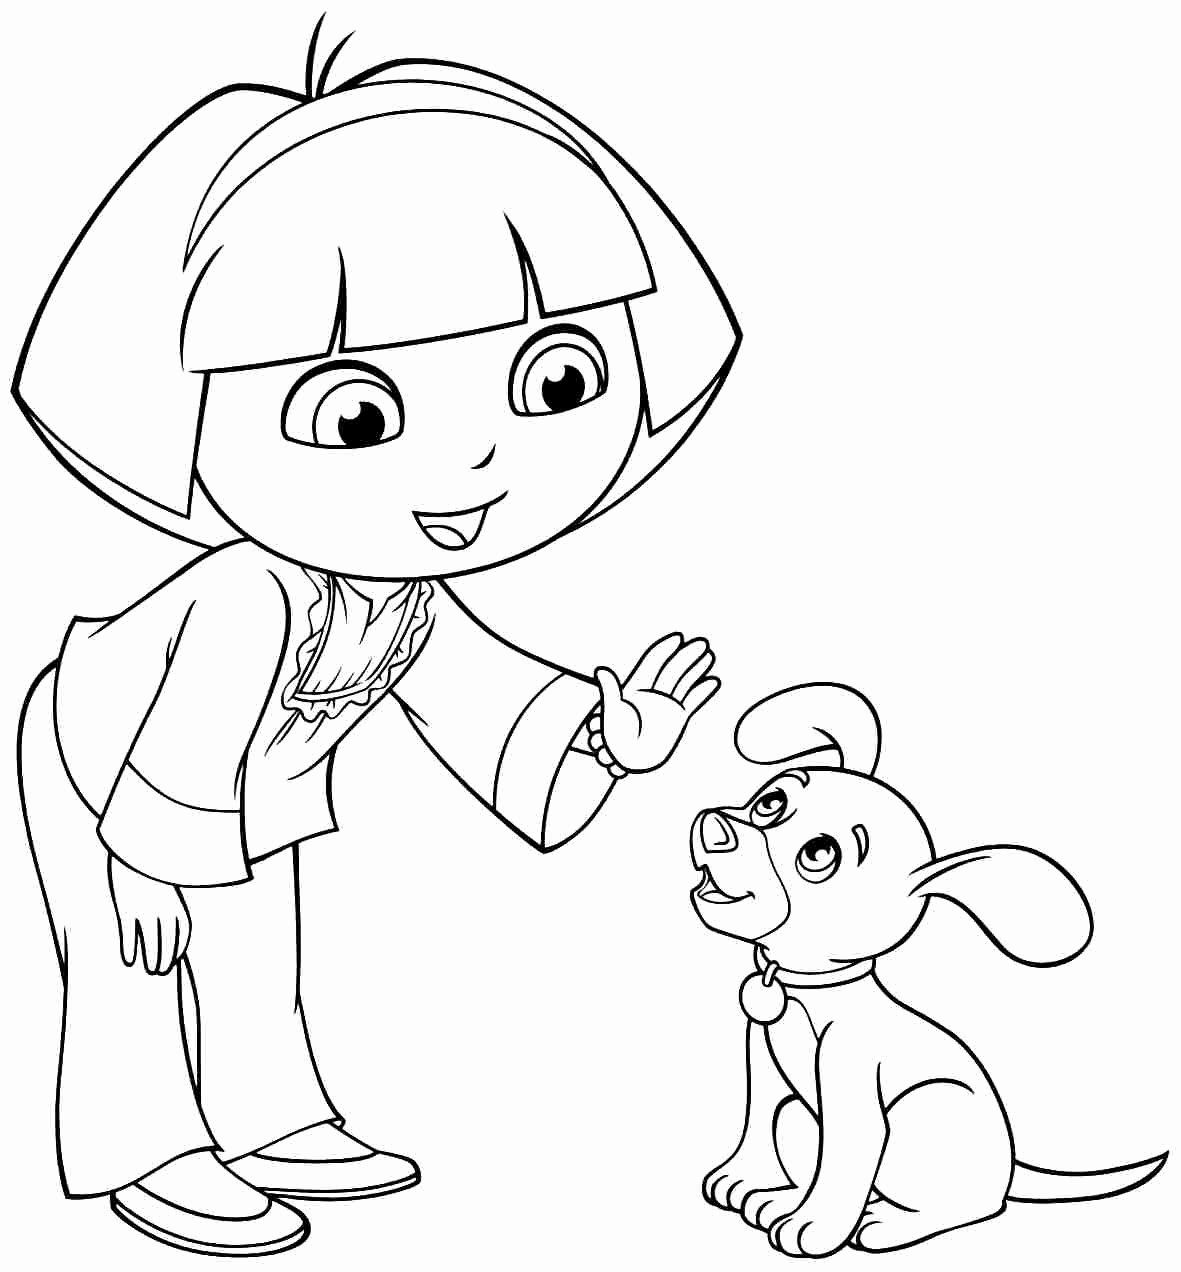 Dora And Friends Coloring Pages - Coloring Home | 1272x1181